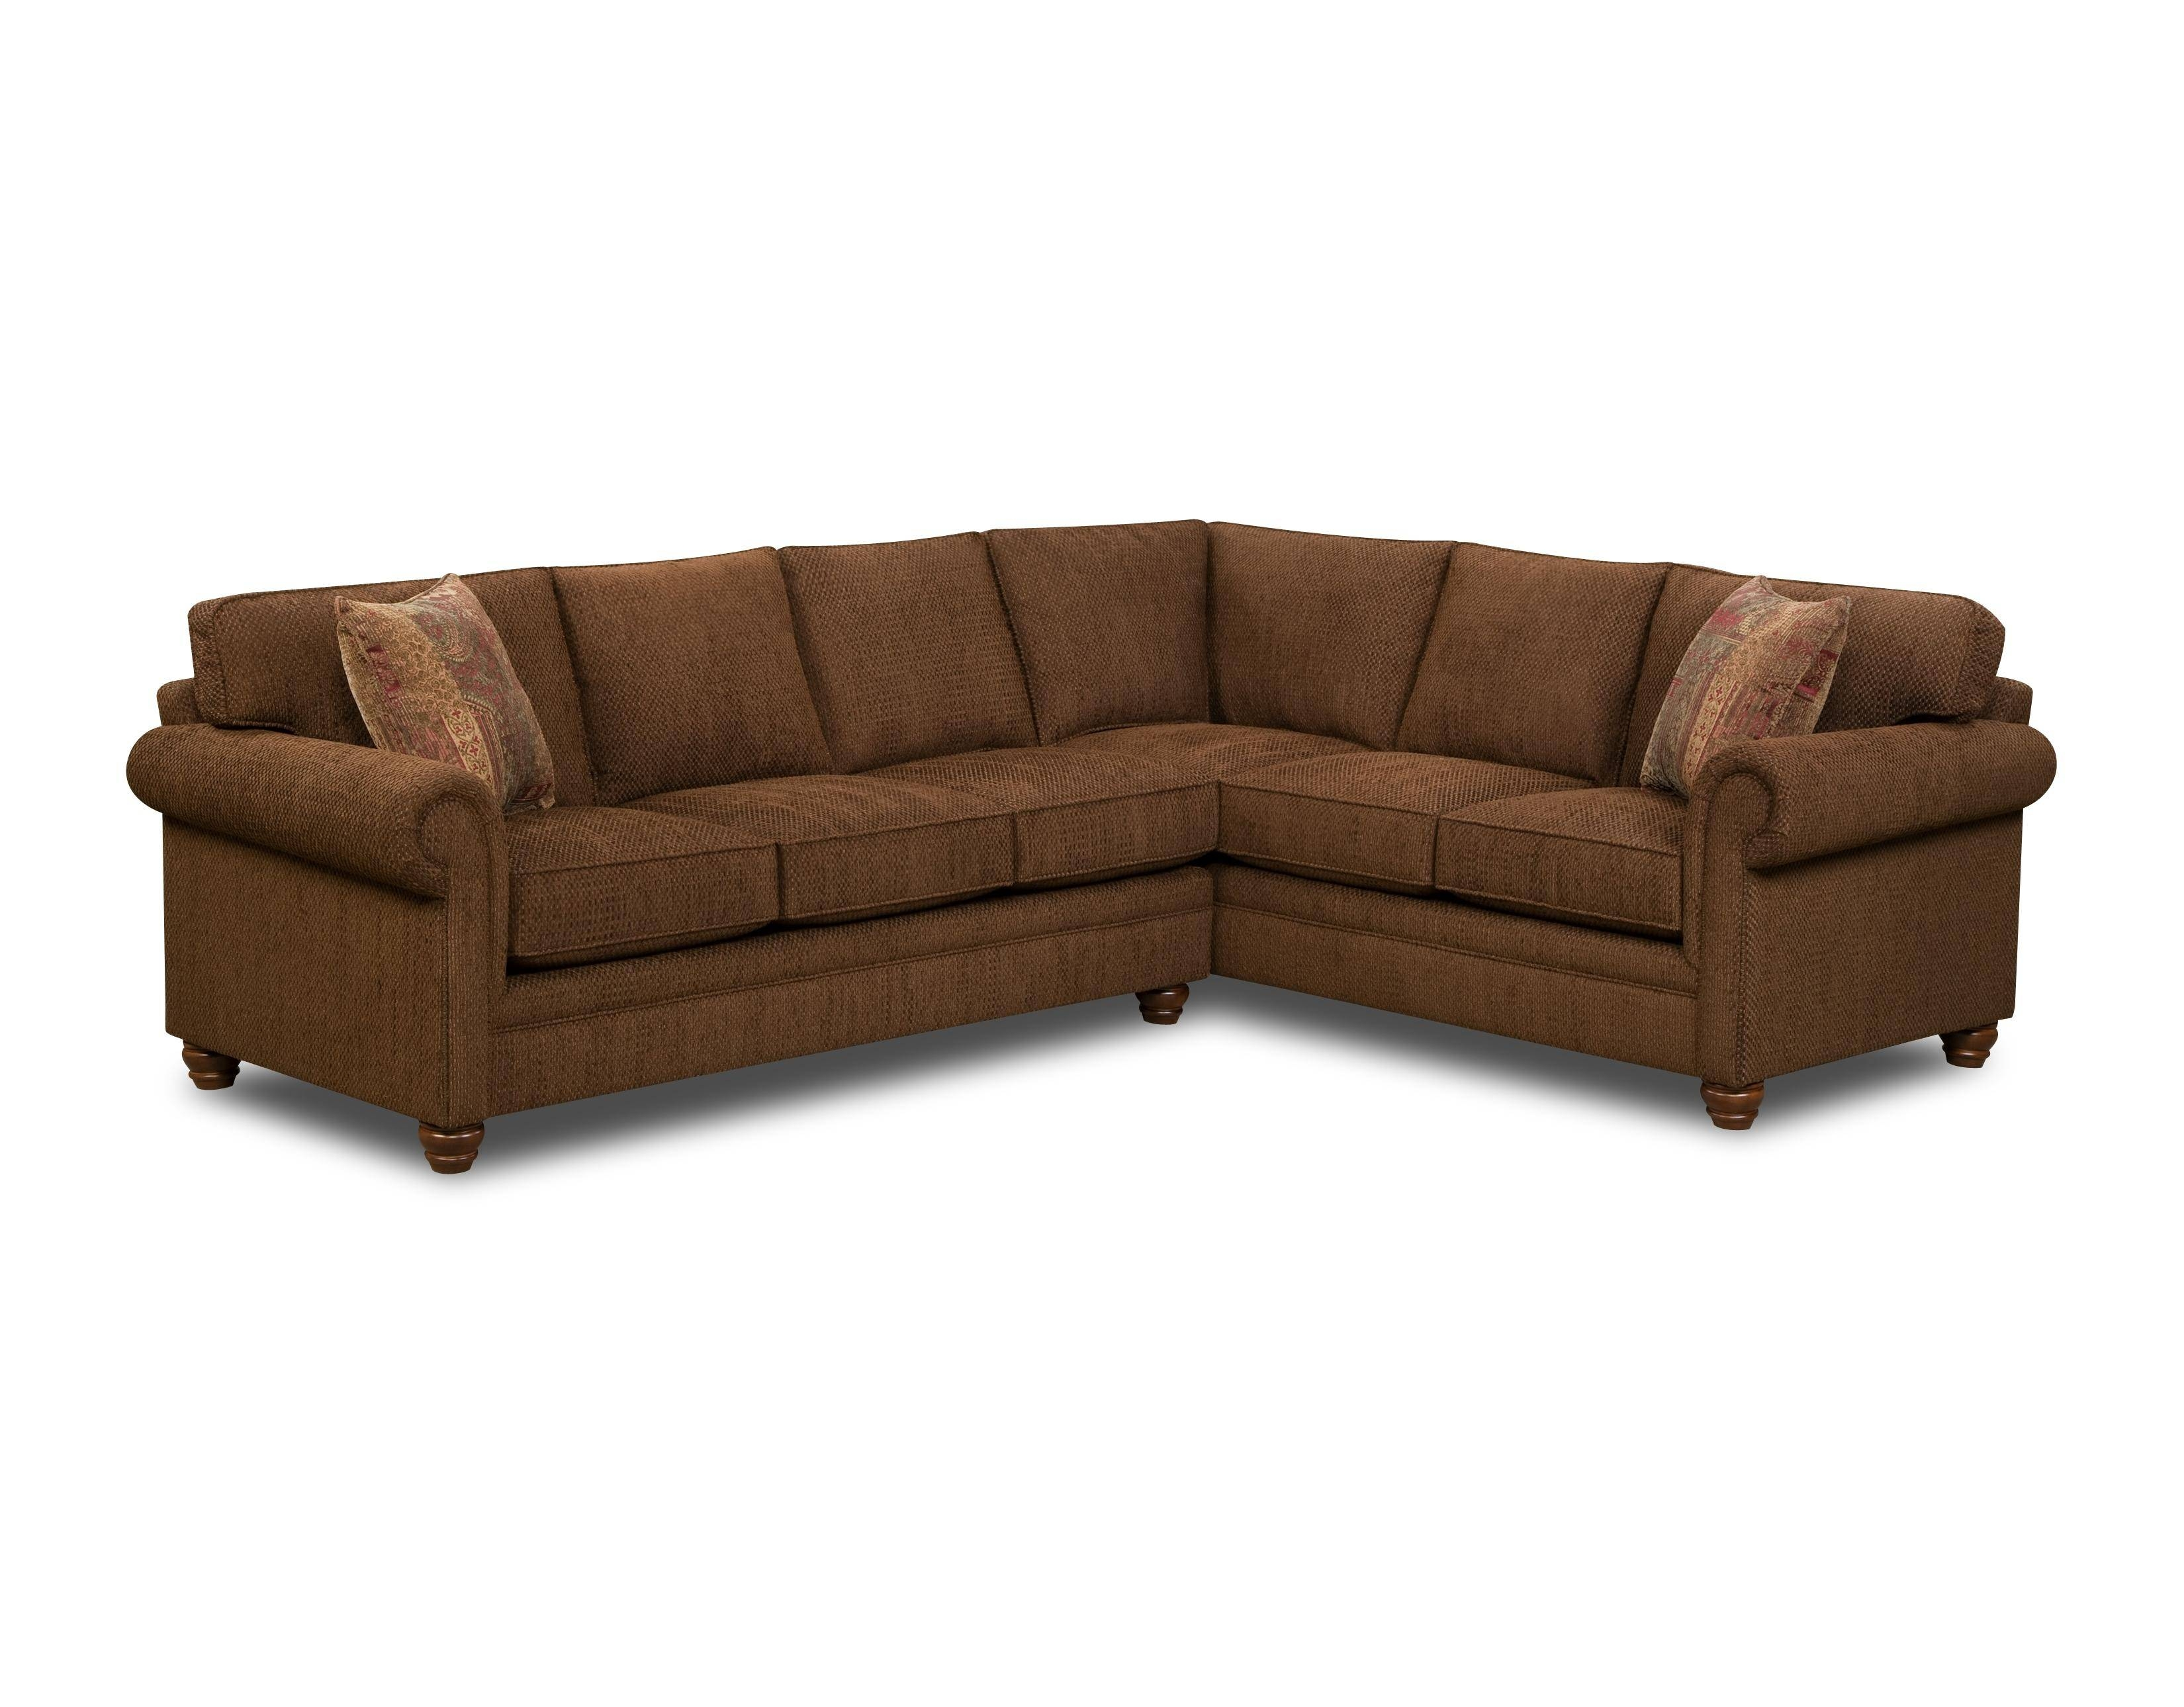 Bauhaus Z18A 2 Piece Traditional Sectional Sofa - Ahfa - Sofa intended for Bauhaus Furniture Sectional Sofas (Image 6 of 15)